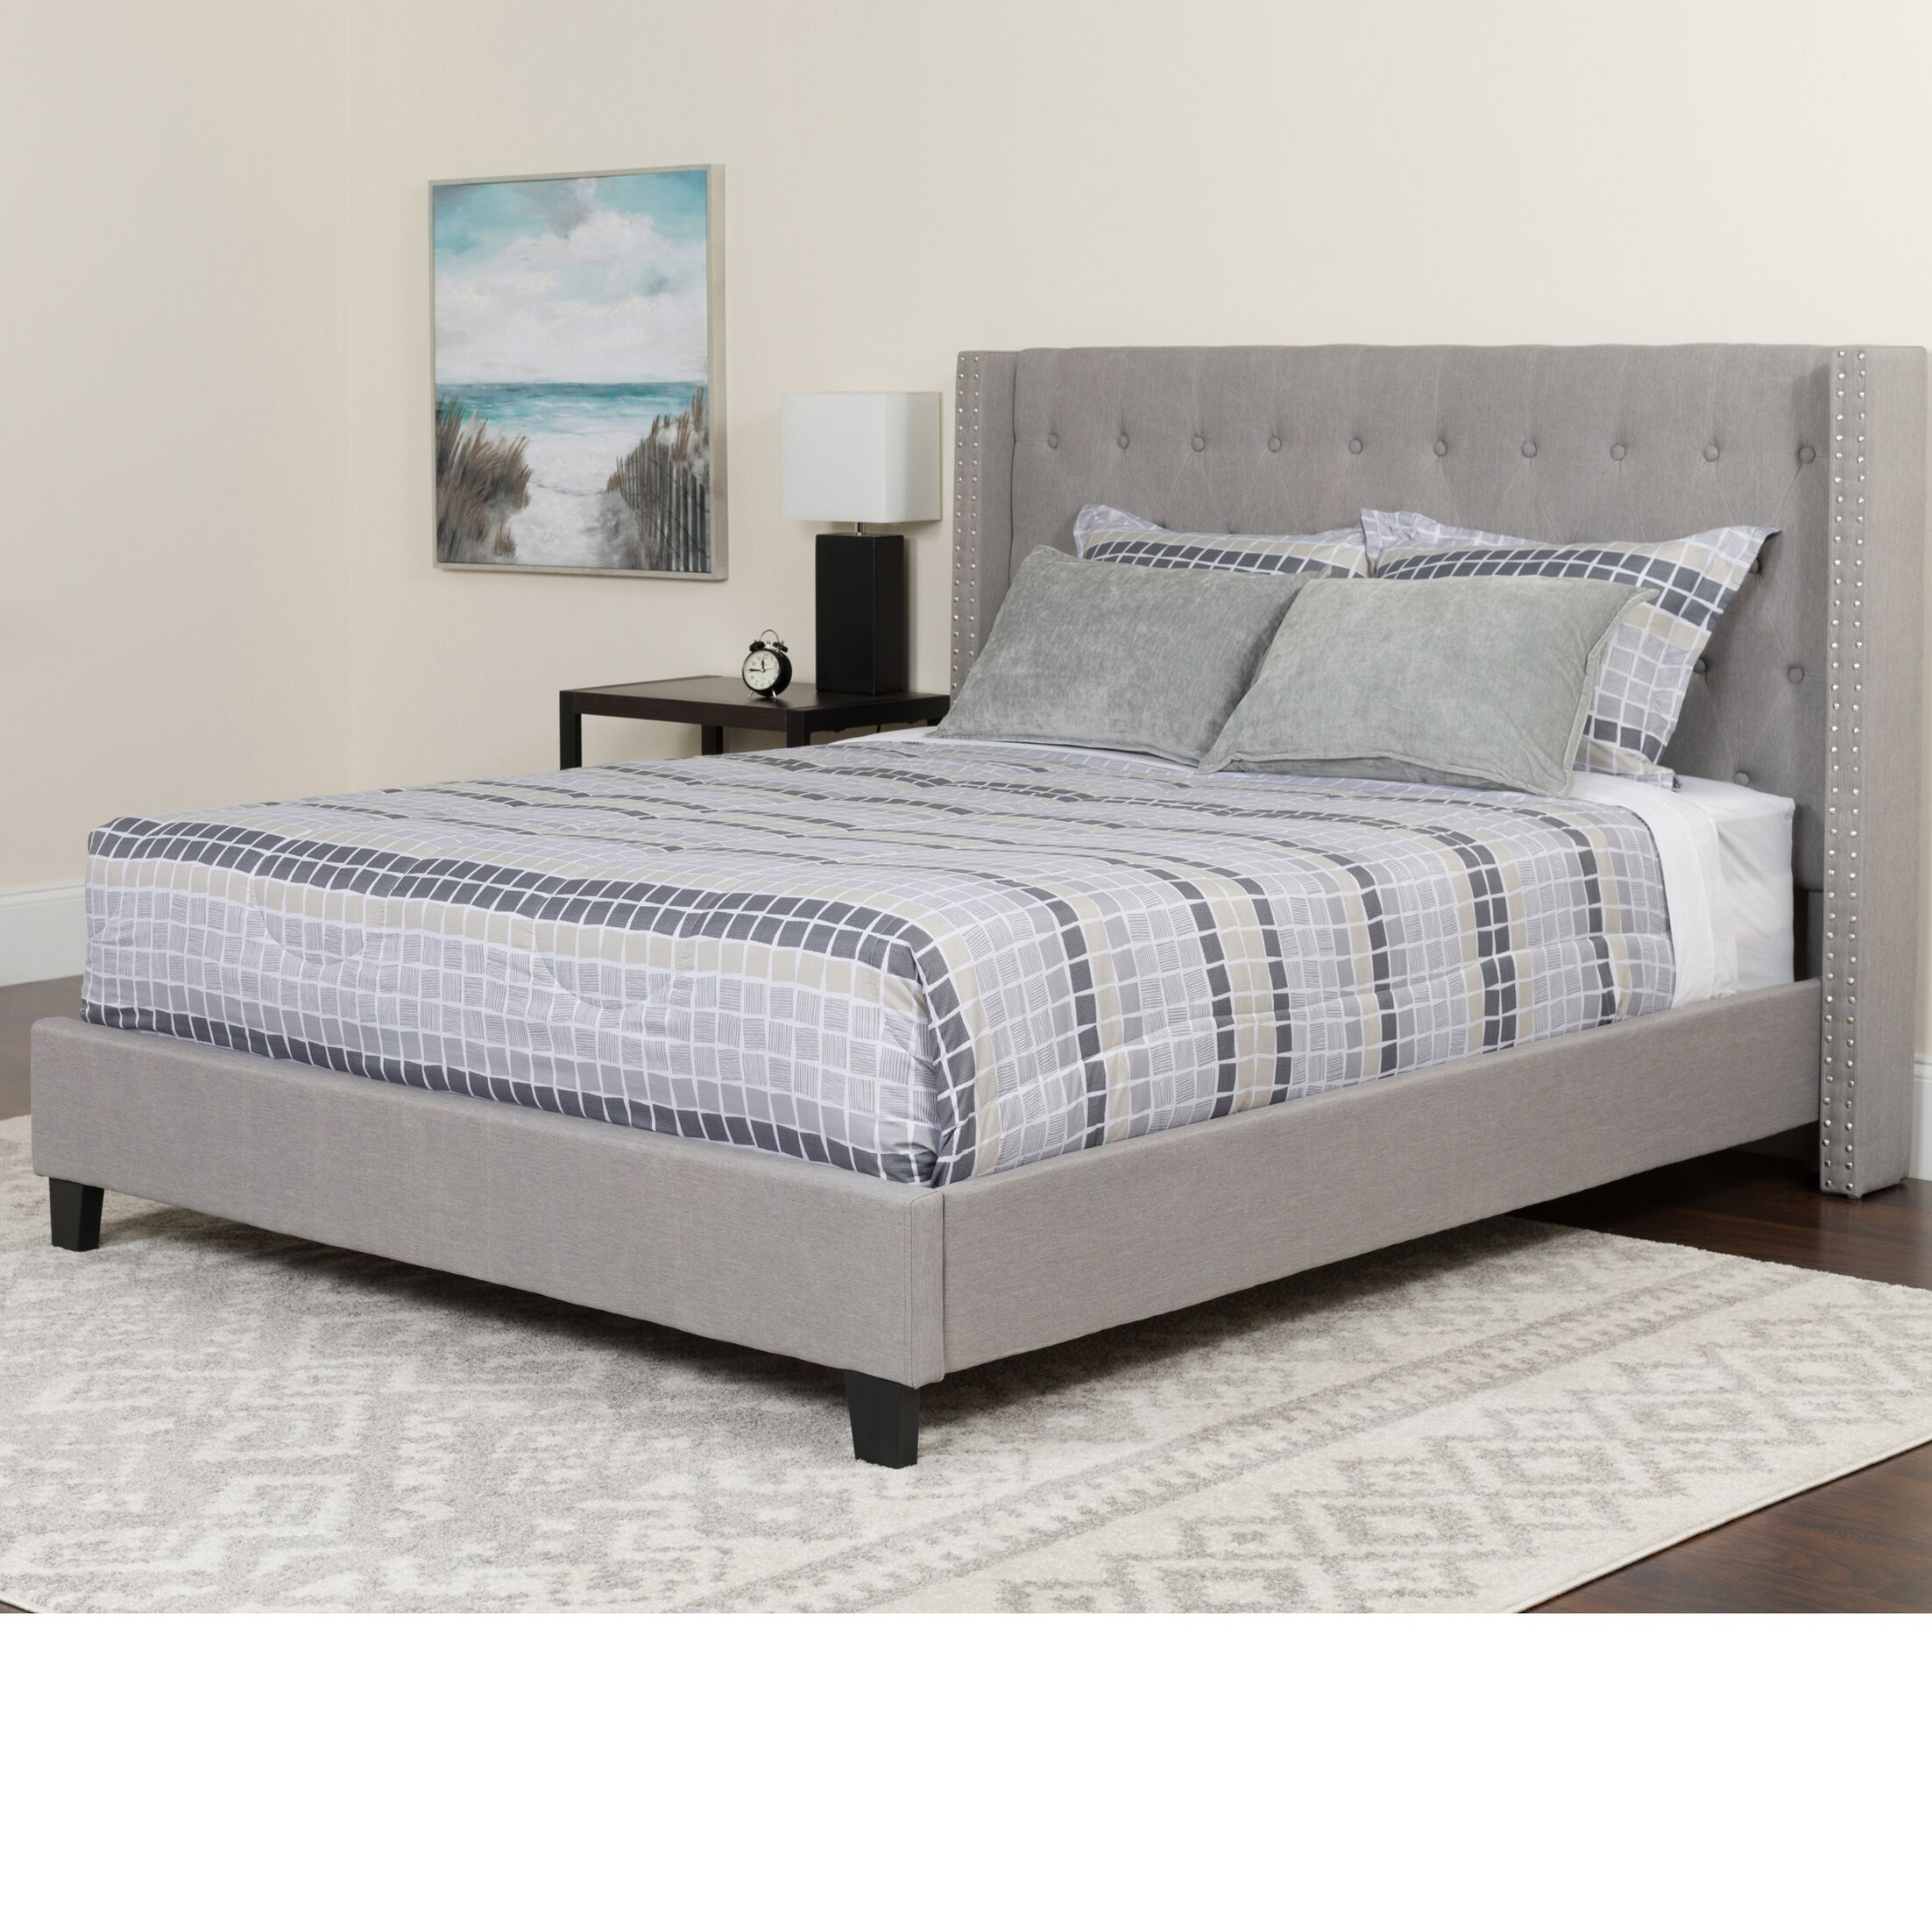 Konieczny Tufted Upholstered Platform Bed Size: Full, Color: Light Gray